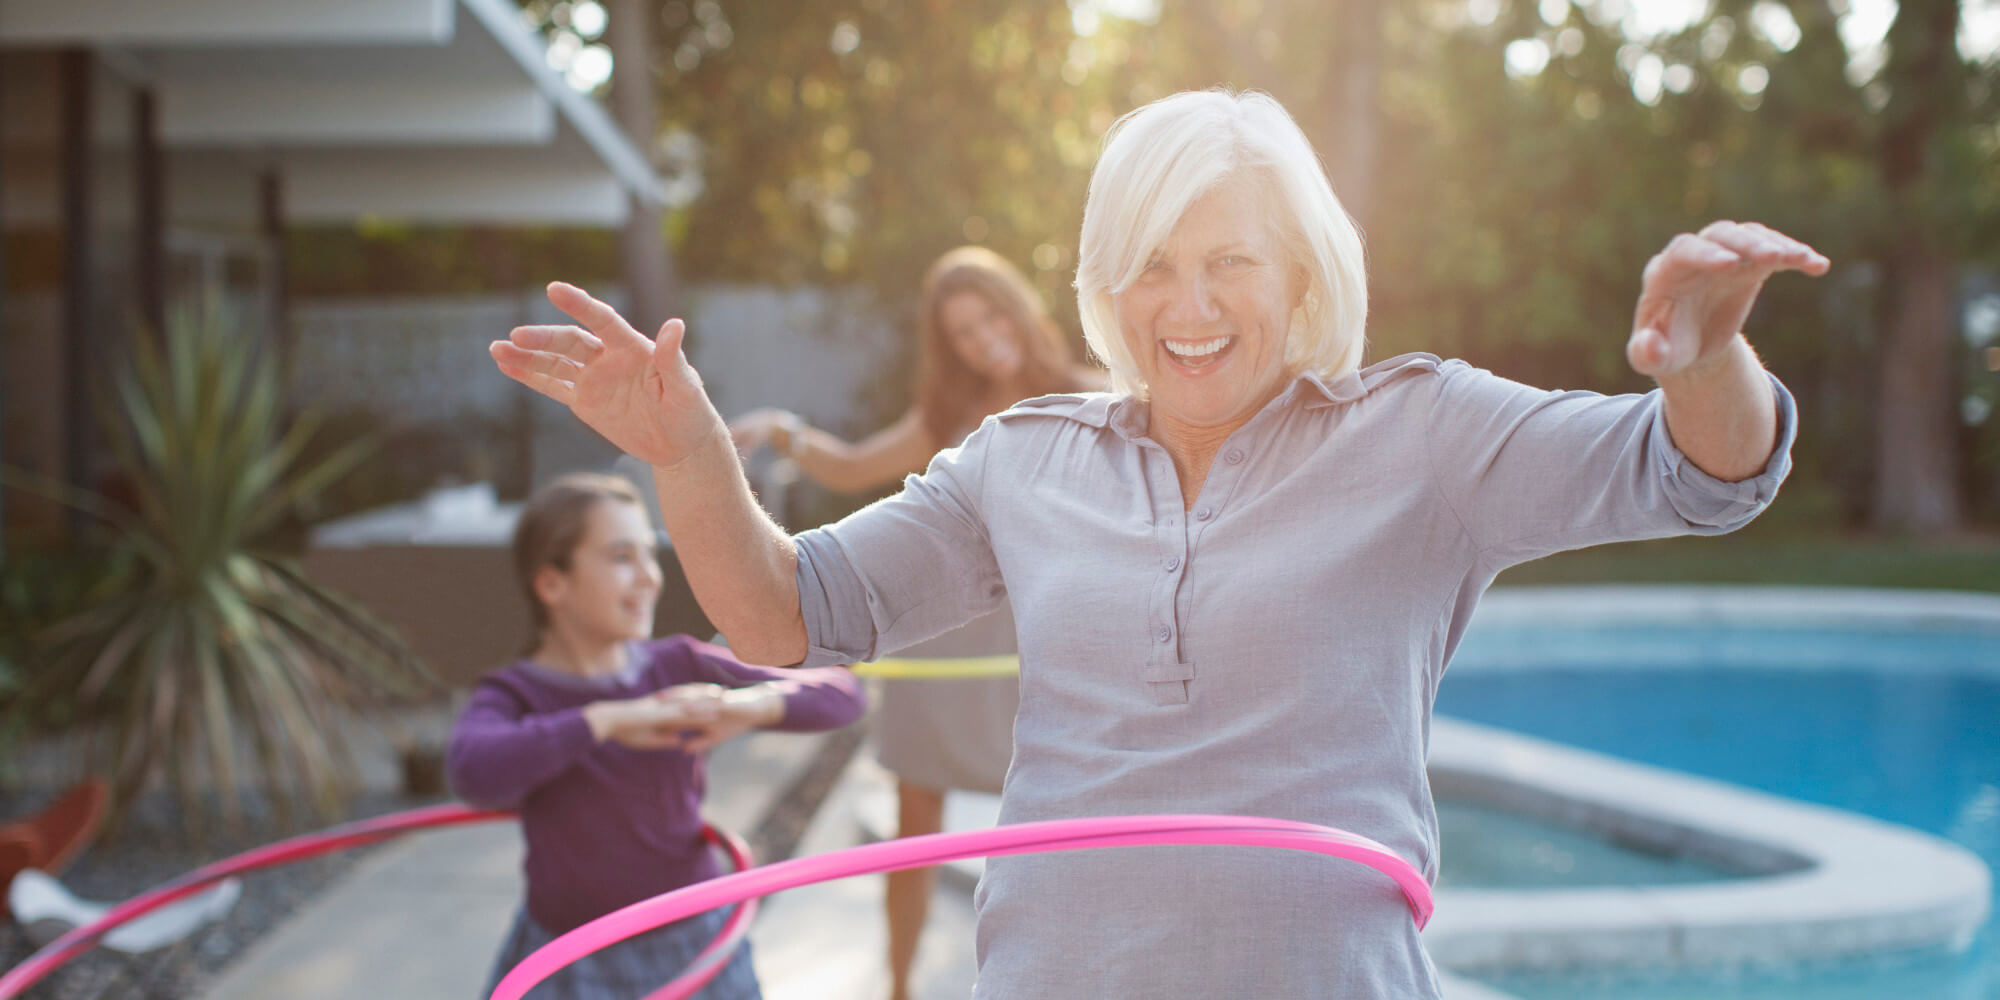 Why Staying Active is Important for Seniors